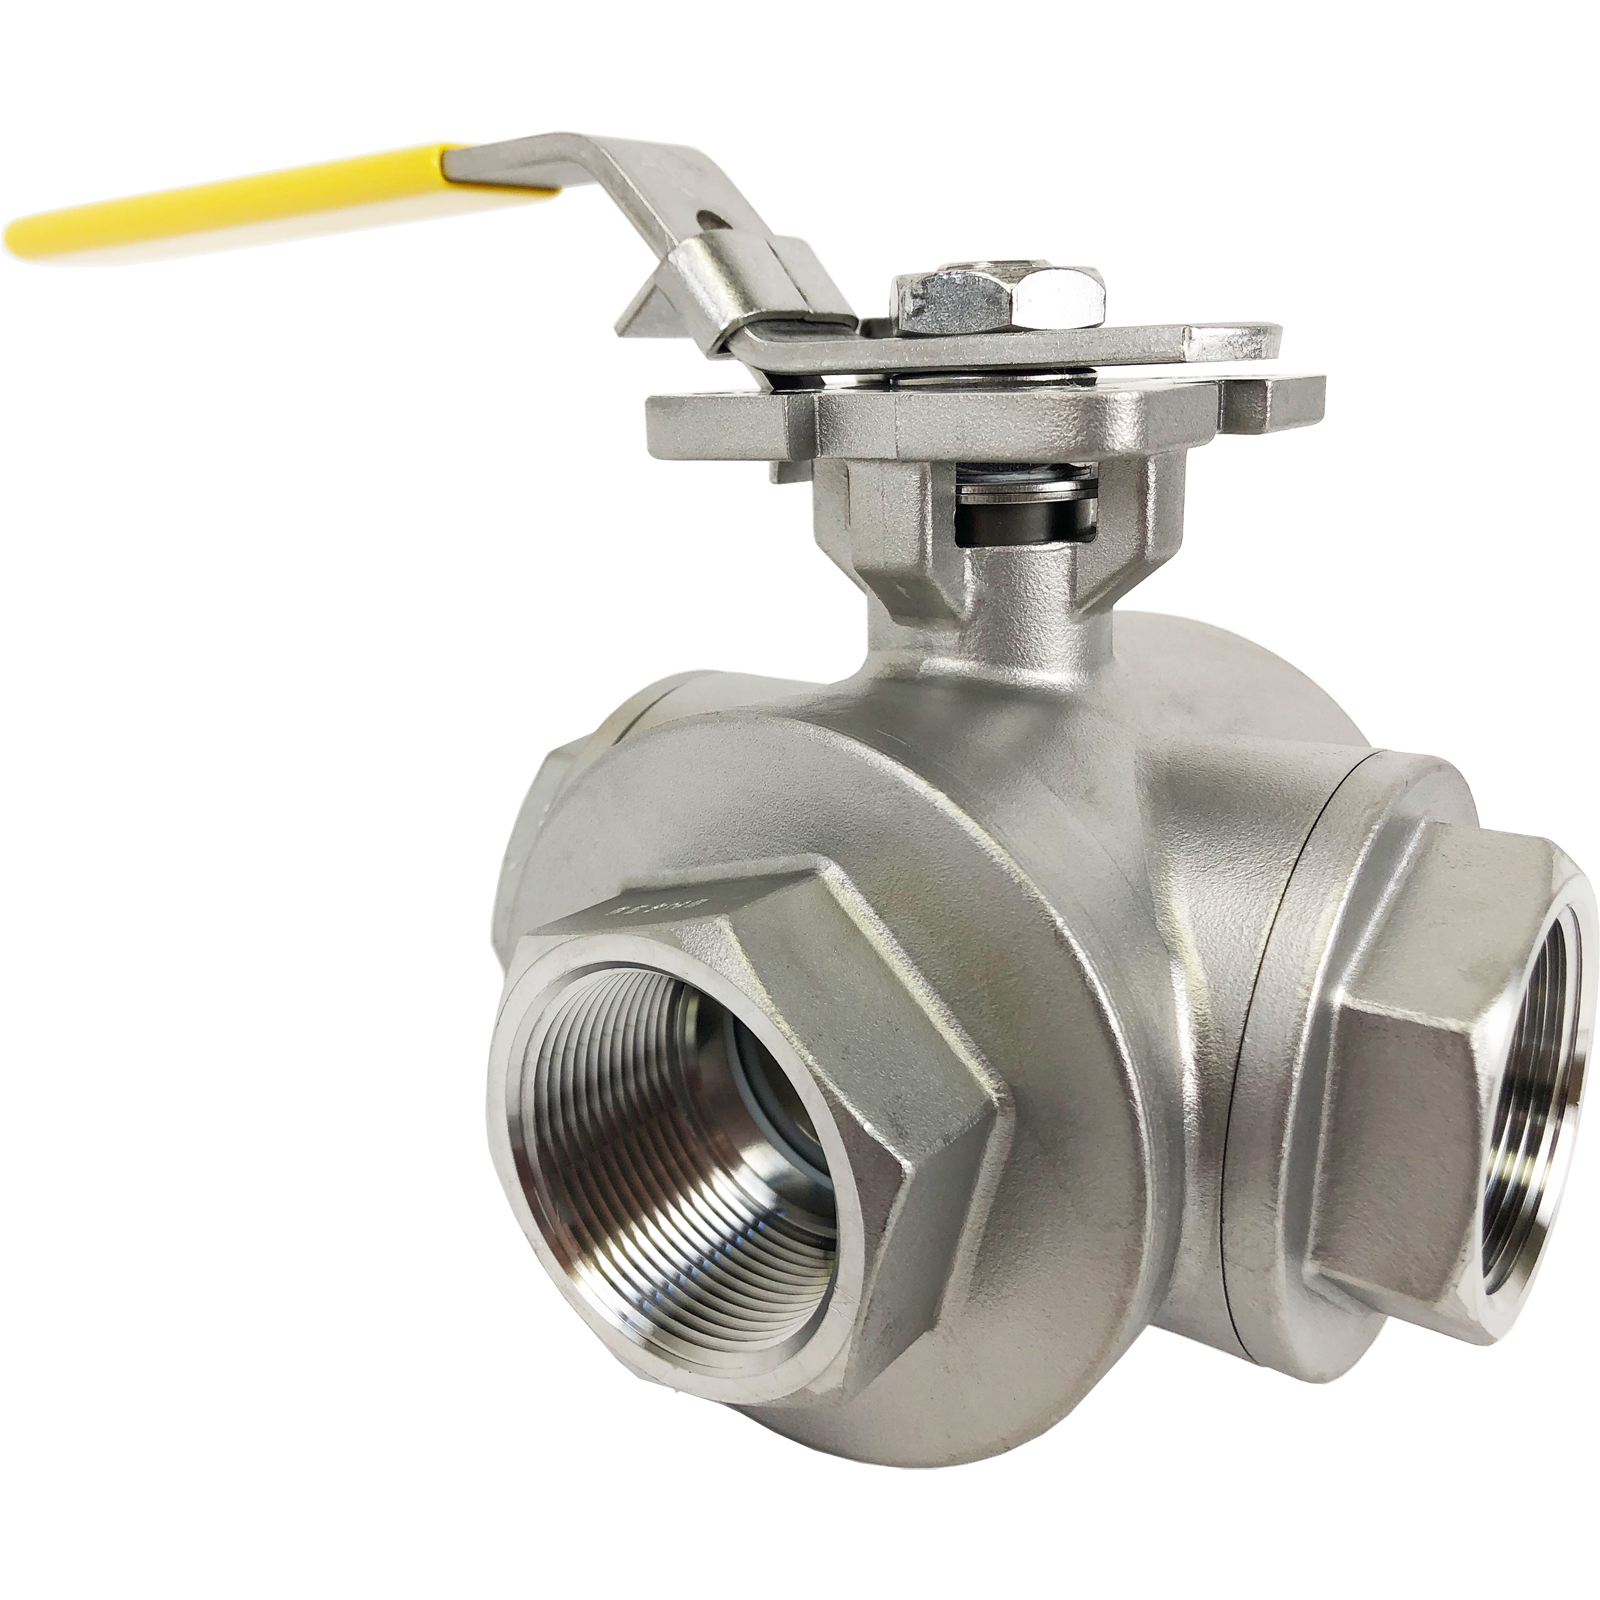 """1-1/2"""" Stainless 3-Way Ball Valve, T-Port, Direct Mount"""